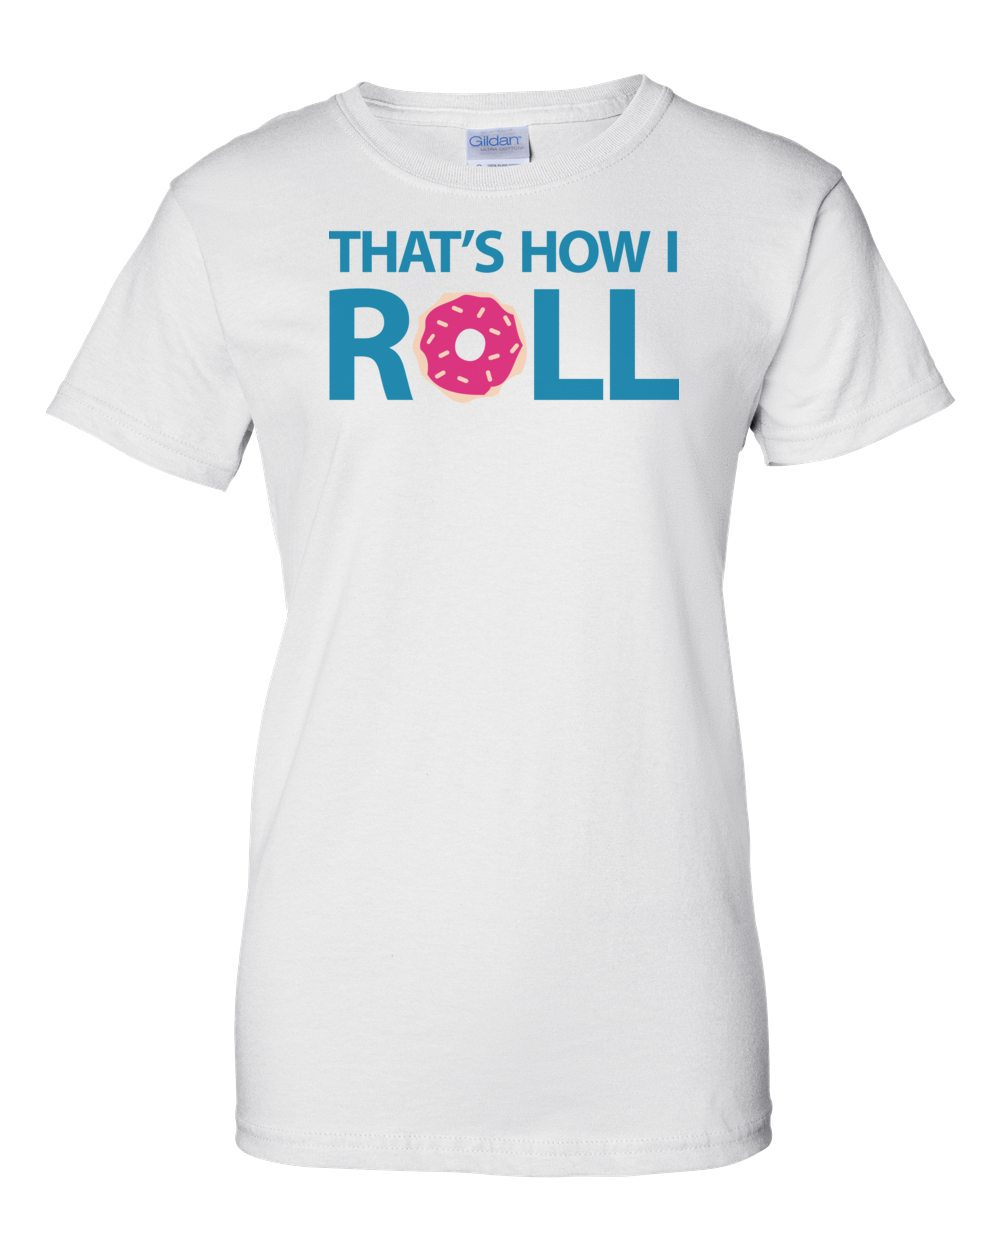 e8a568e0 That's How I Roll - Donut Funny Shirt